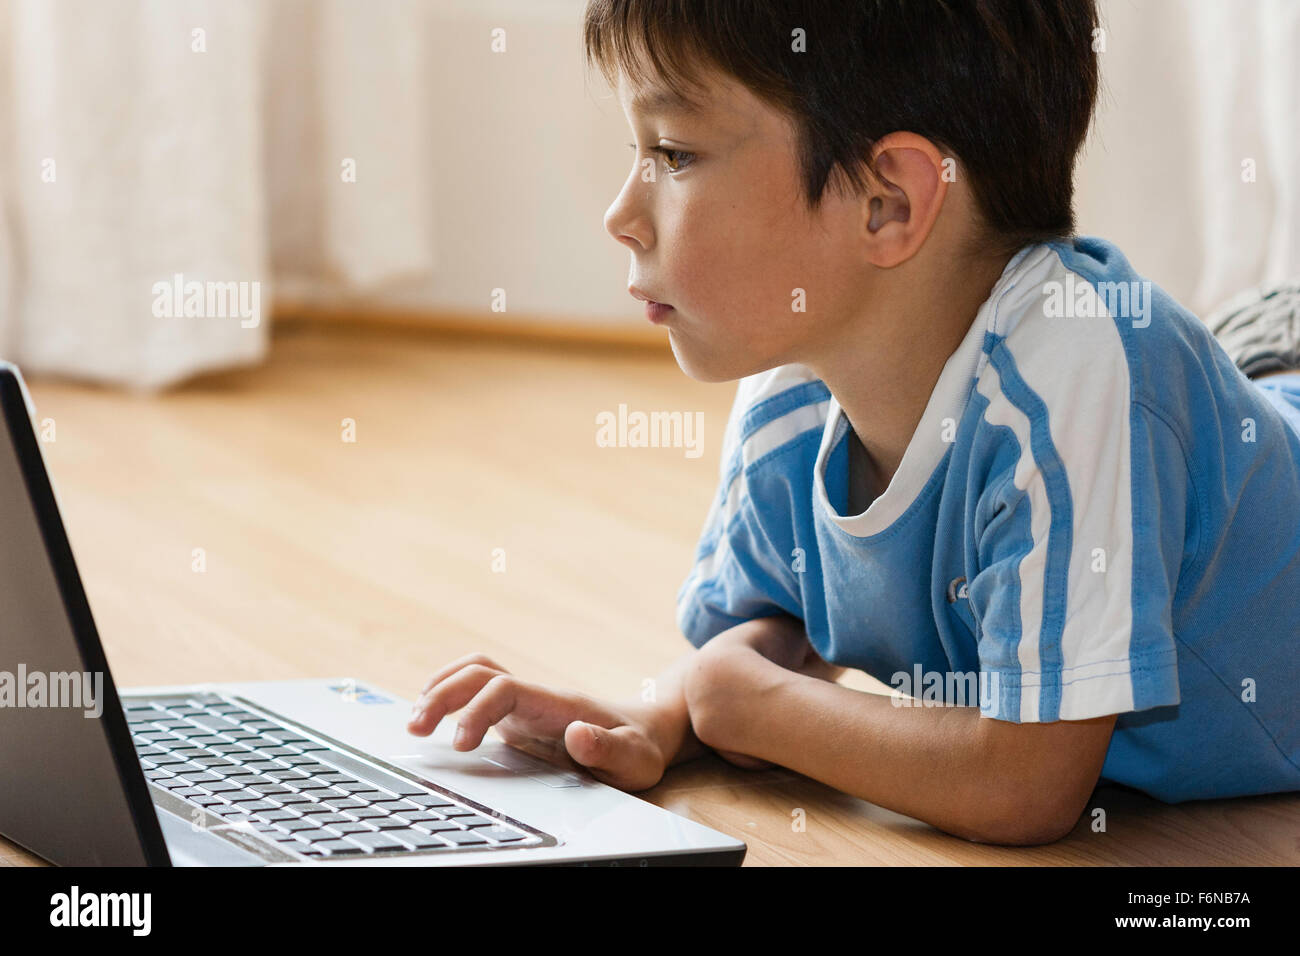 Side view of Caucasian child, boy, 7-8 year old, laying on floor using laptop computer. Fingers on scroll pad and - Stock Image